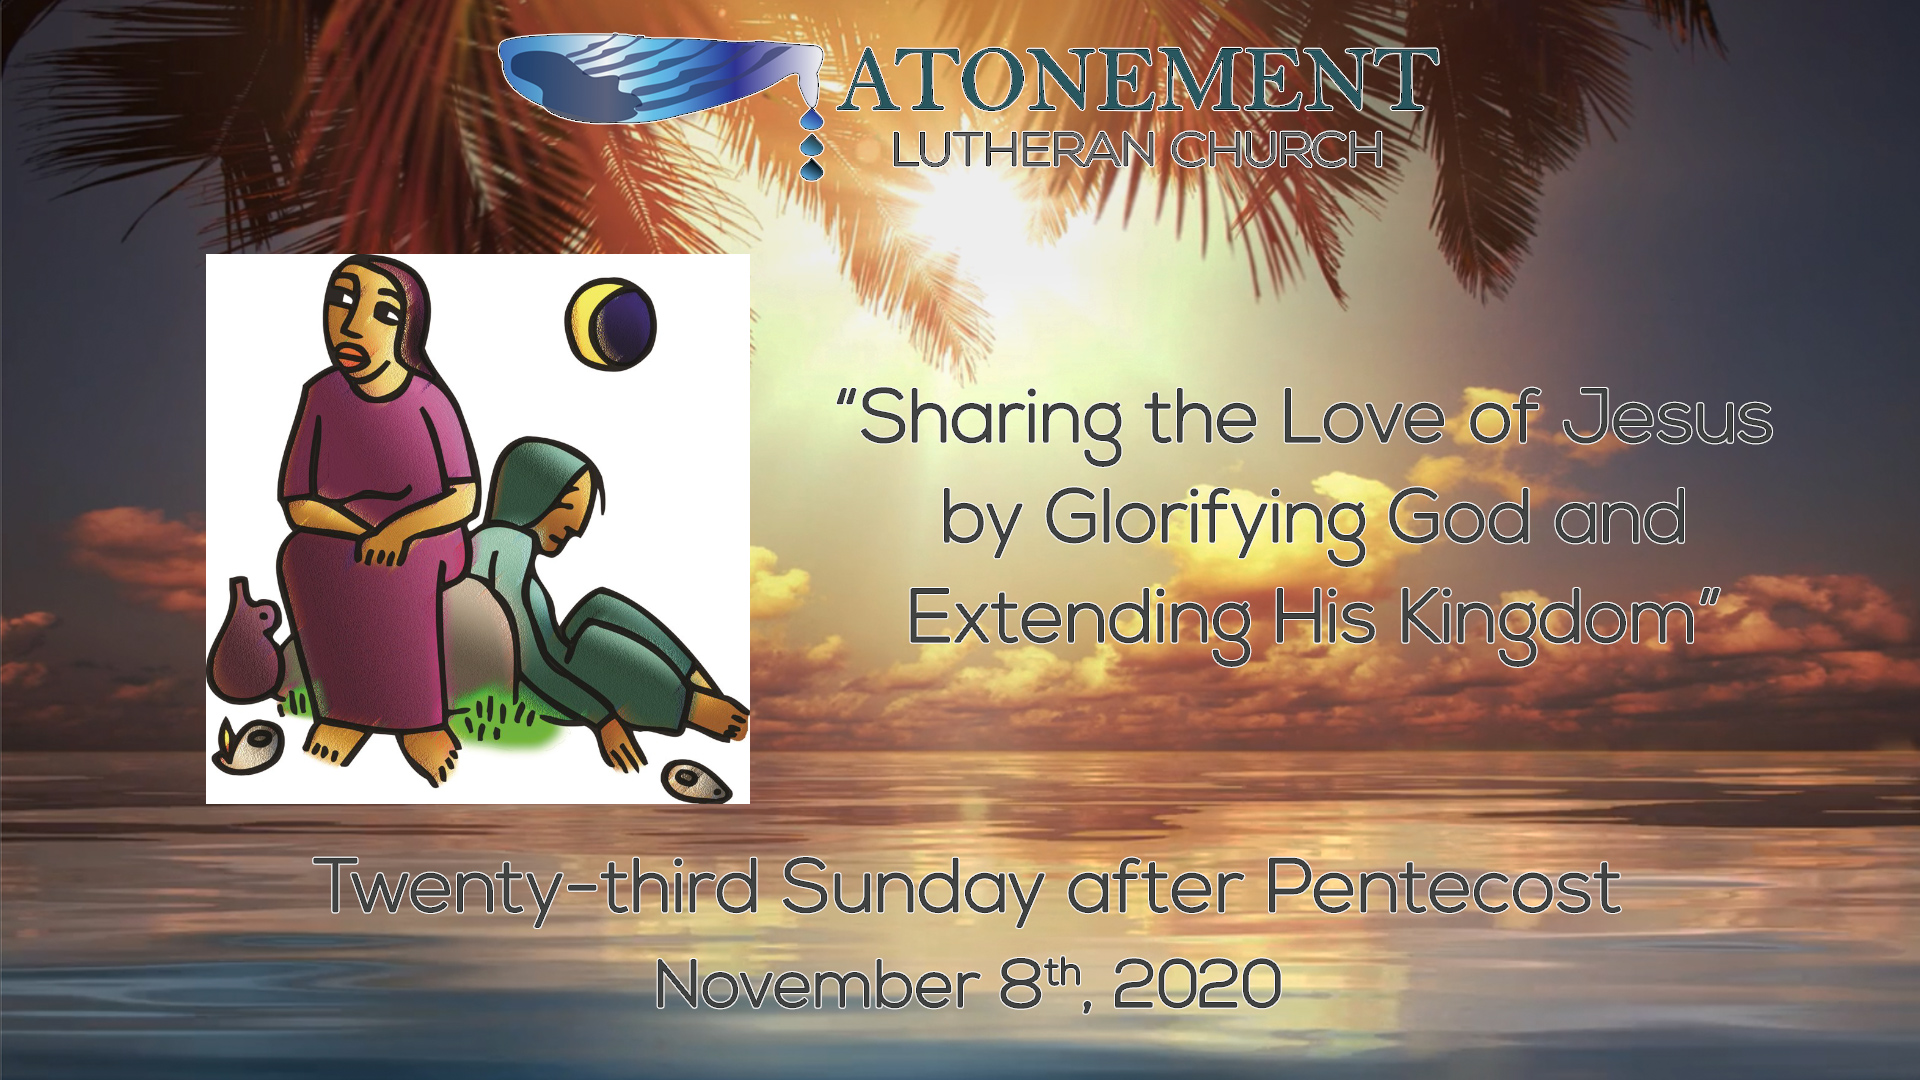 Nov 8 2020 23rd Sunday after Pentecost